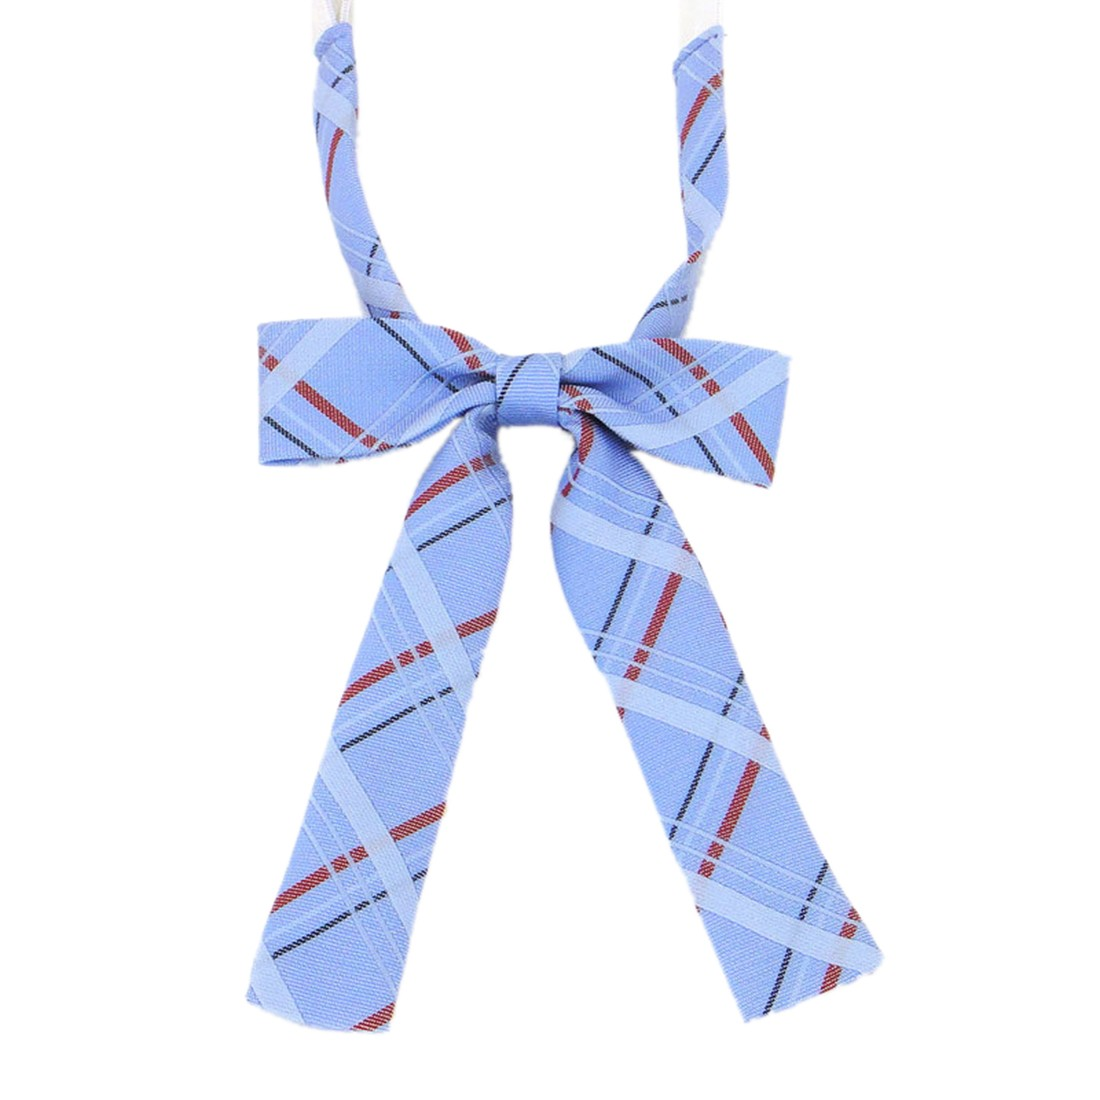 Japanese Student School JK Unifrom Jacquard Bowknot Bow Tie Cosplay Necktie New